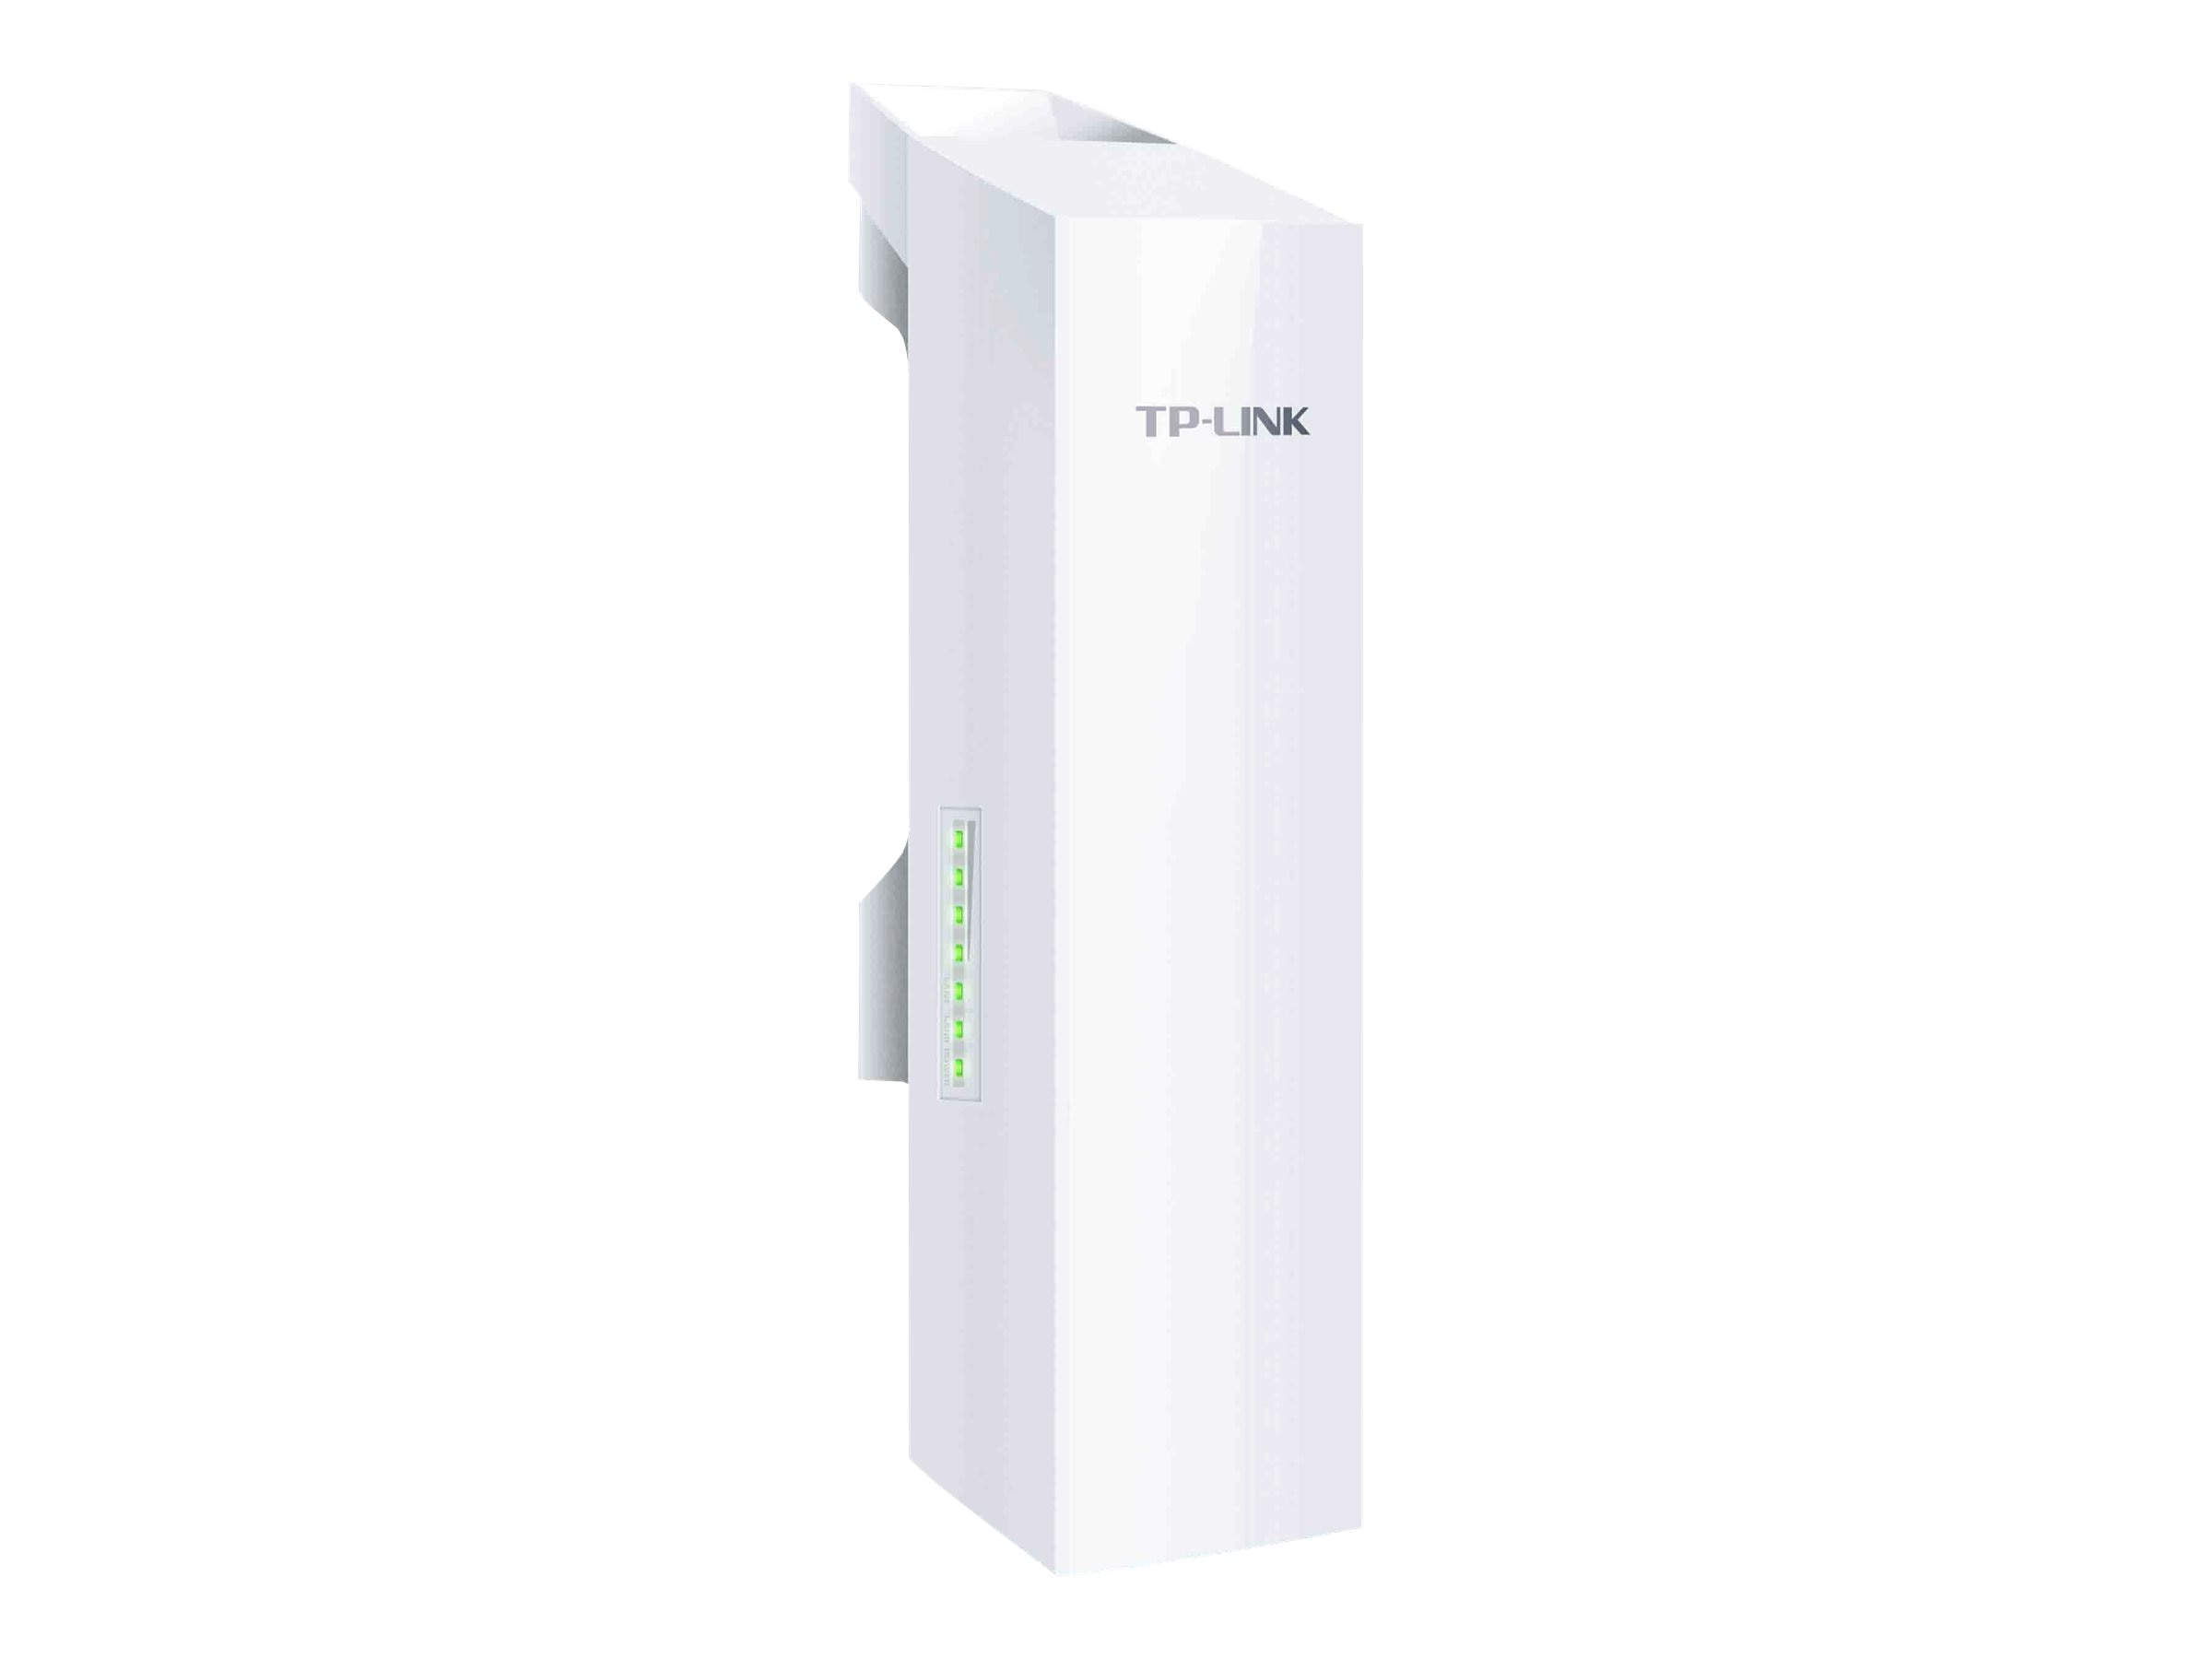 TP-LINK 2.4GHZ 300MBPS 9DBI Outdoor CPE, CPE210, 18033142, Wireless Antennas & Extenders